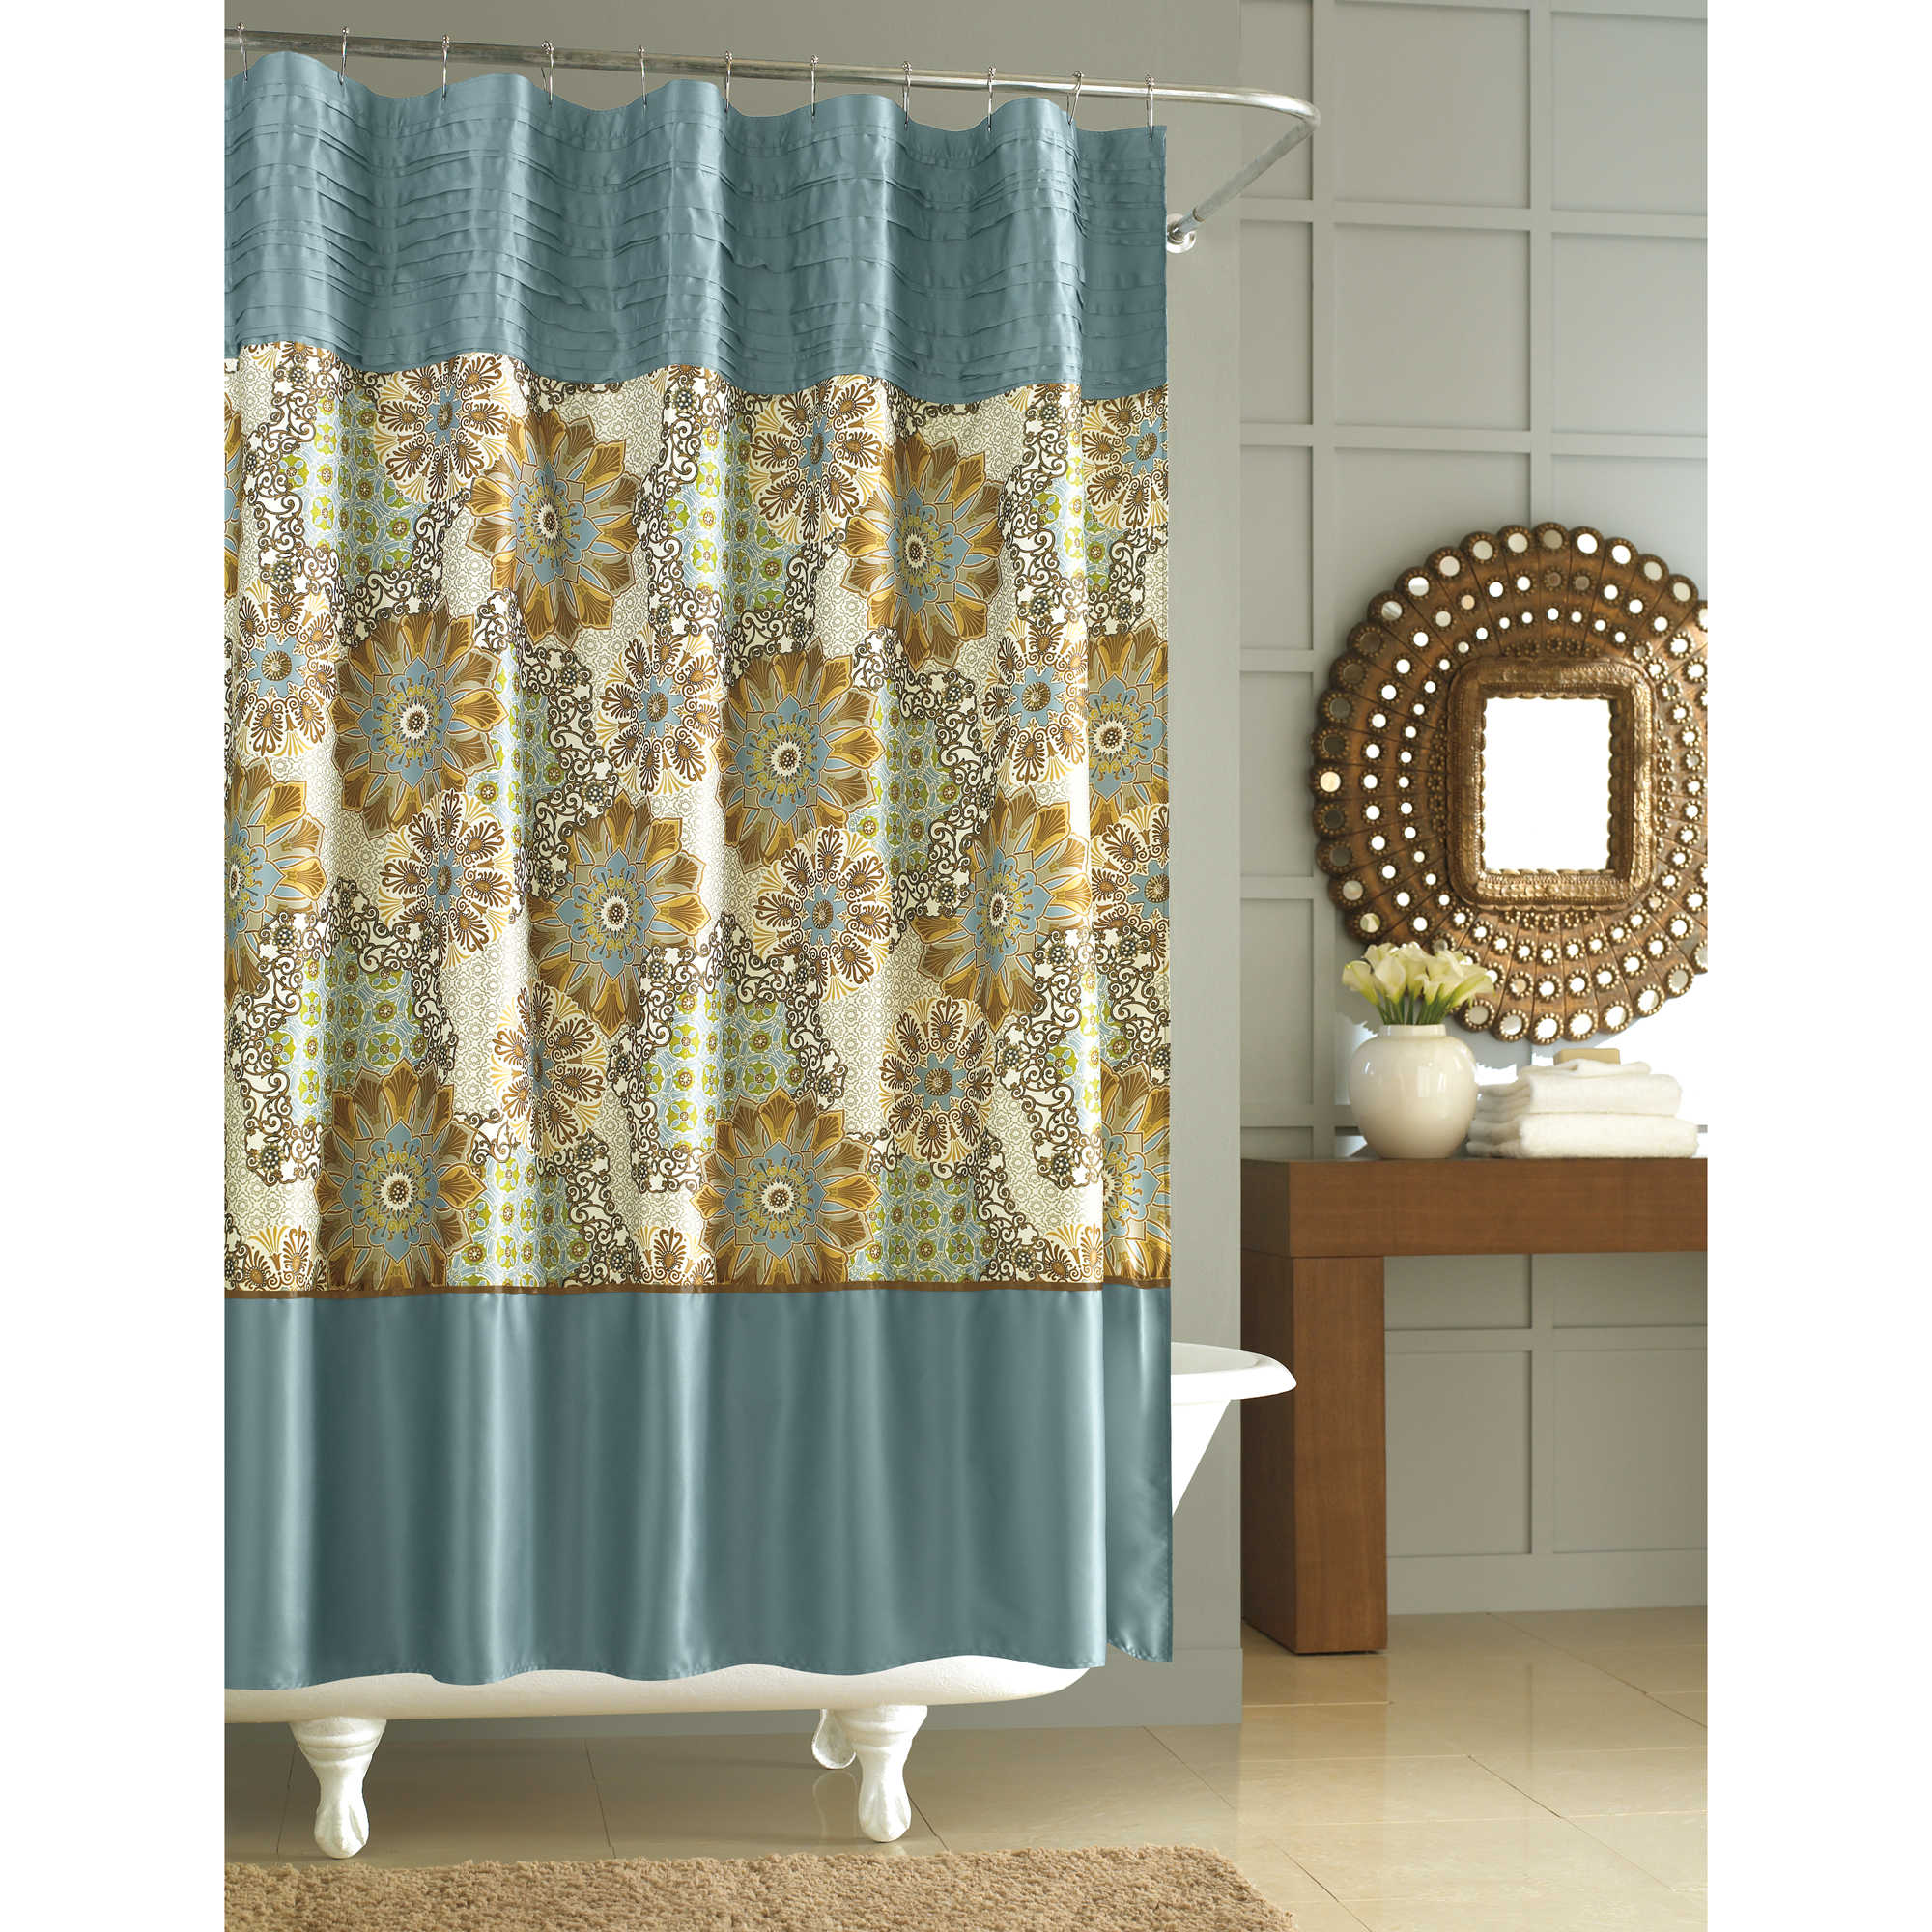 Adorable Nicole Miller Home Decor For Bathroom With Floral Patterned Blue  Curtain For Freestanding White Tub